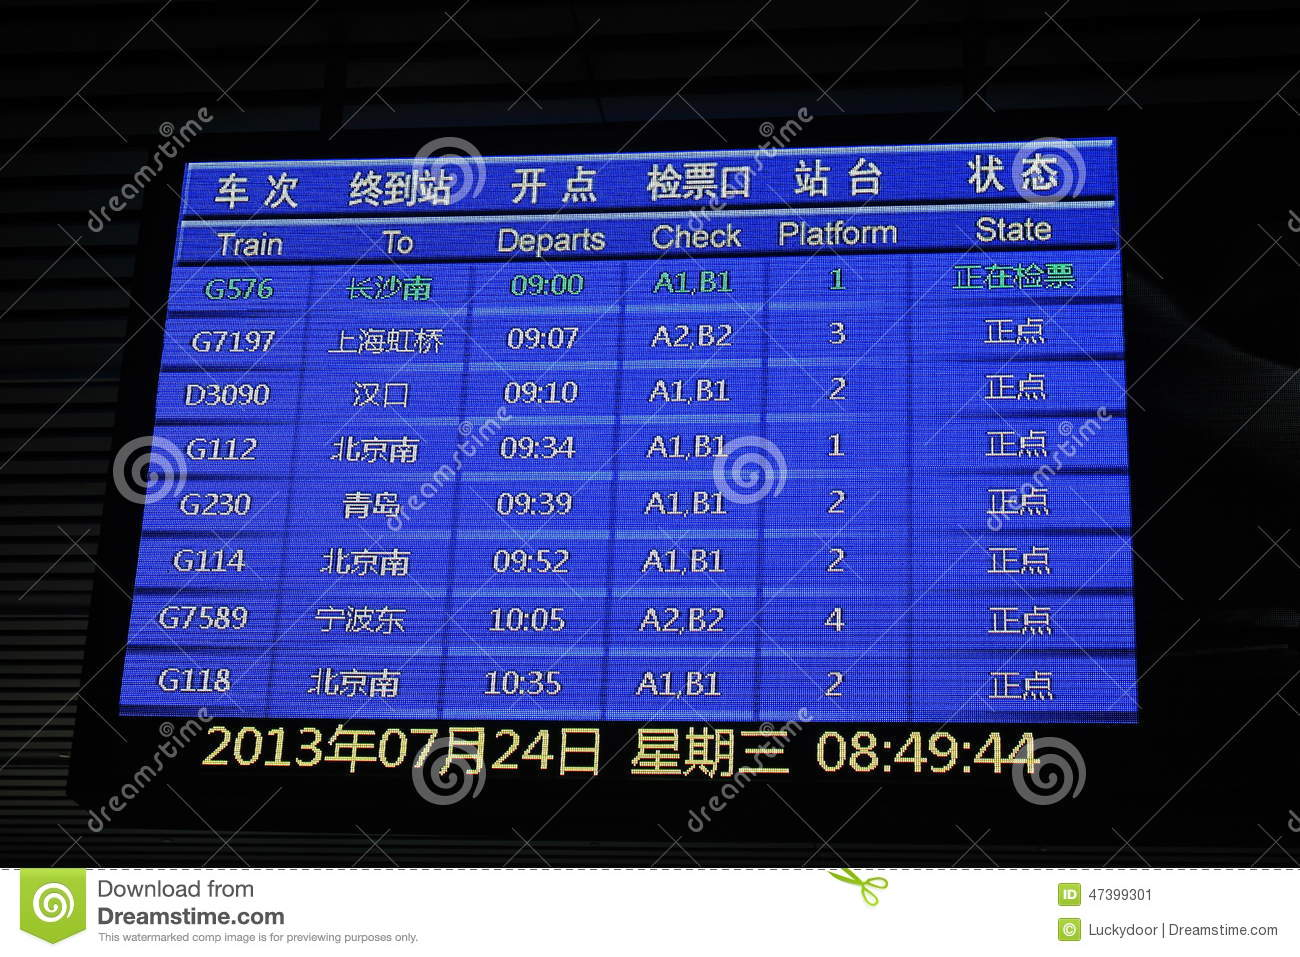 train schedule stock image. image of technology, convenient - 47399301